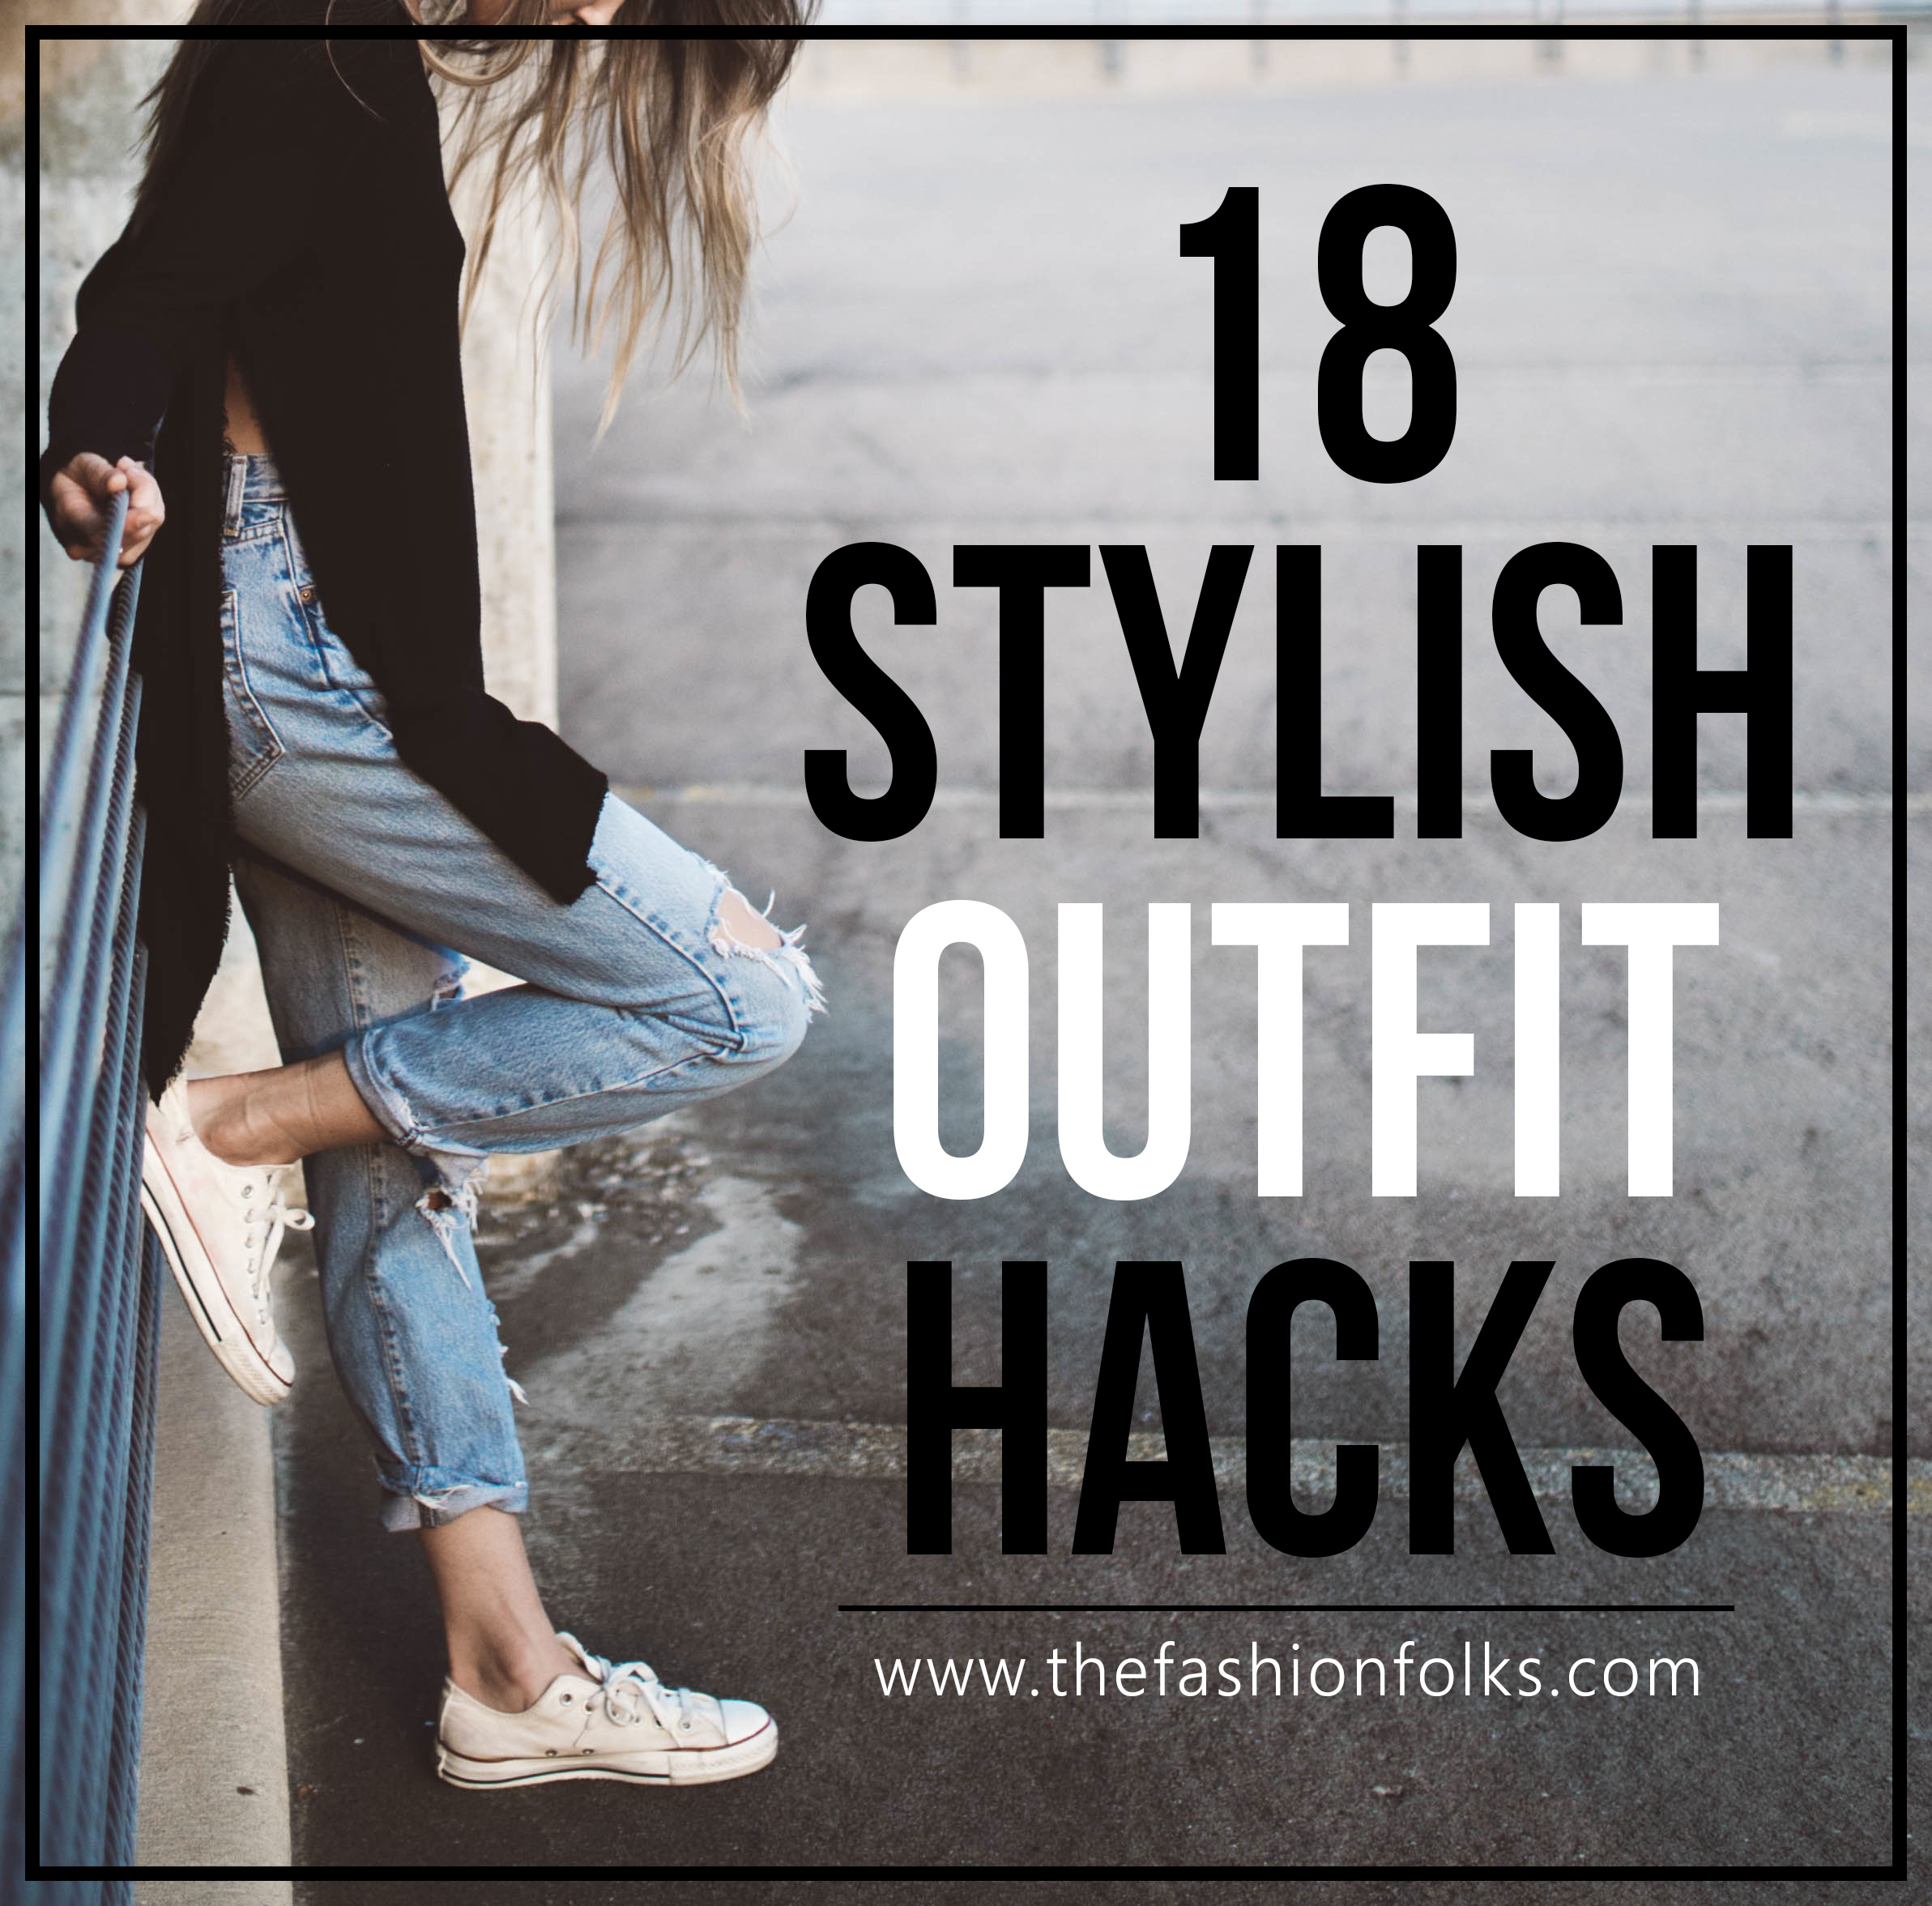 18 Stylish Outfit Hacks + Outfit Inspiration and street style fashion | The Fashion Folks